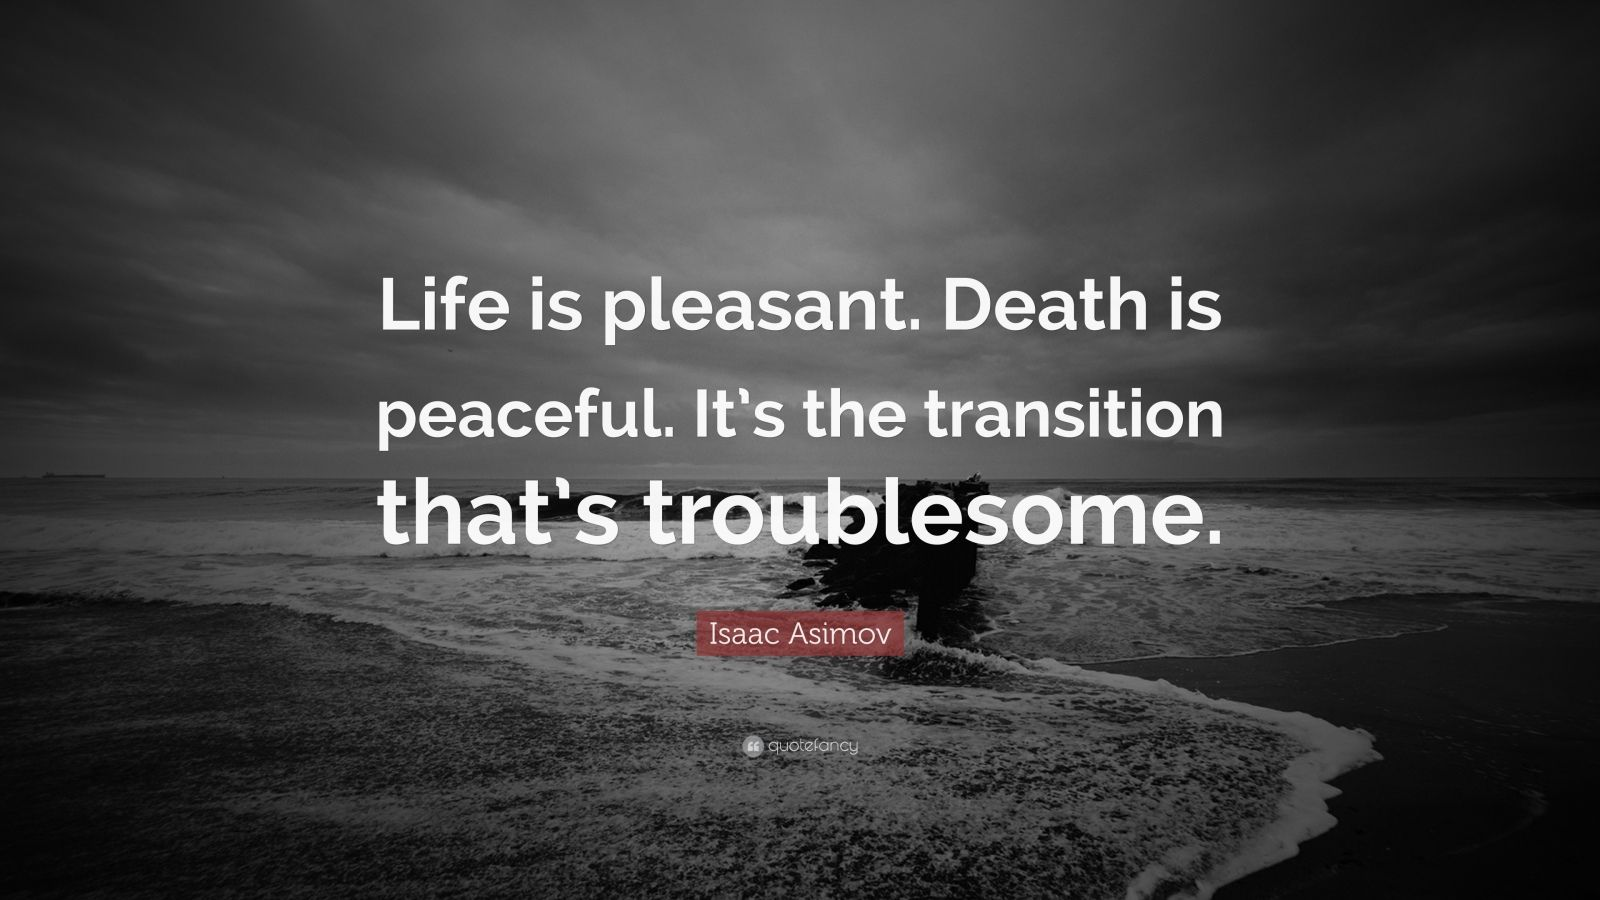 Elon Musk Quotes Wallpapers Isaac Asimov Quote Life Is Pleasant Death Is Peaceful